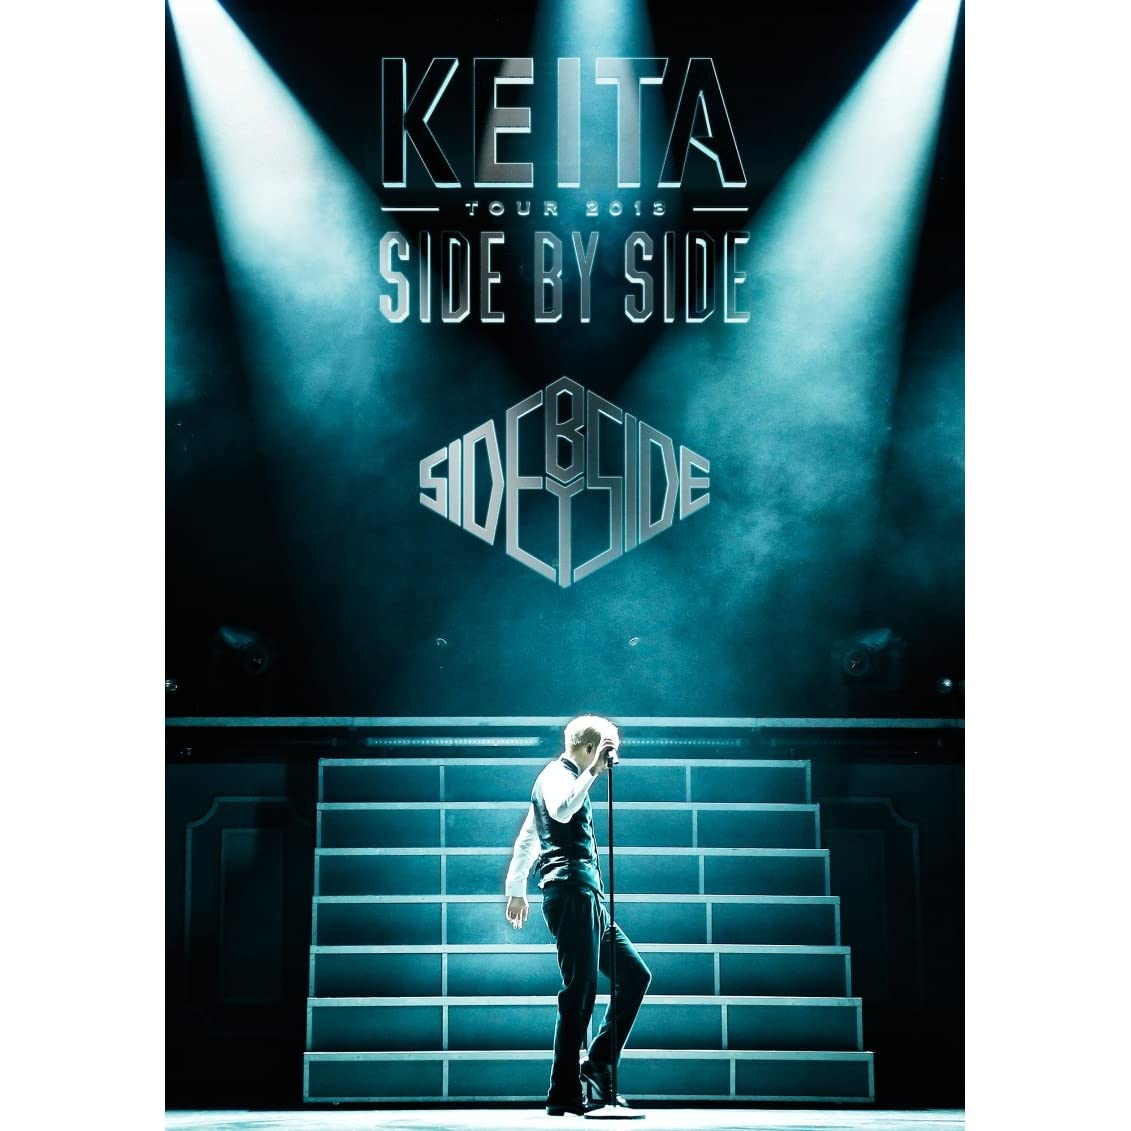 [DVDISO] KEITA – SIDE BY SIDE TOUR 2013